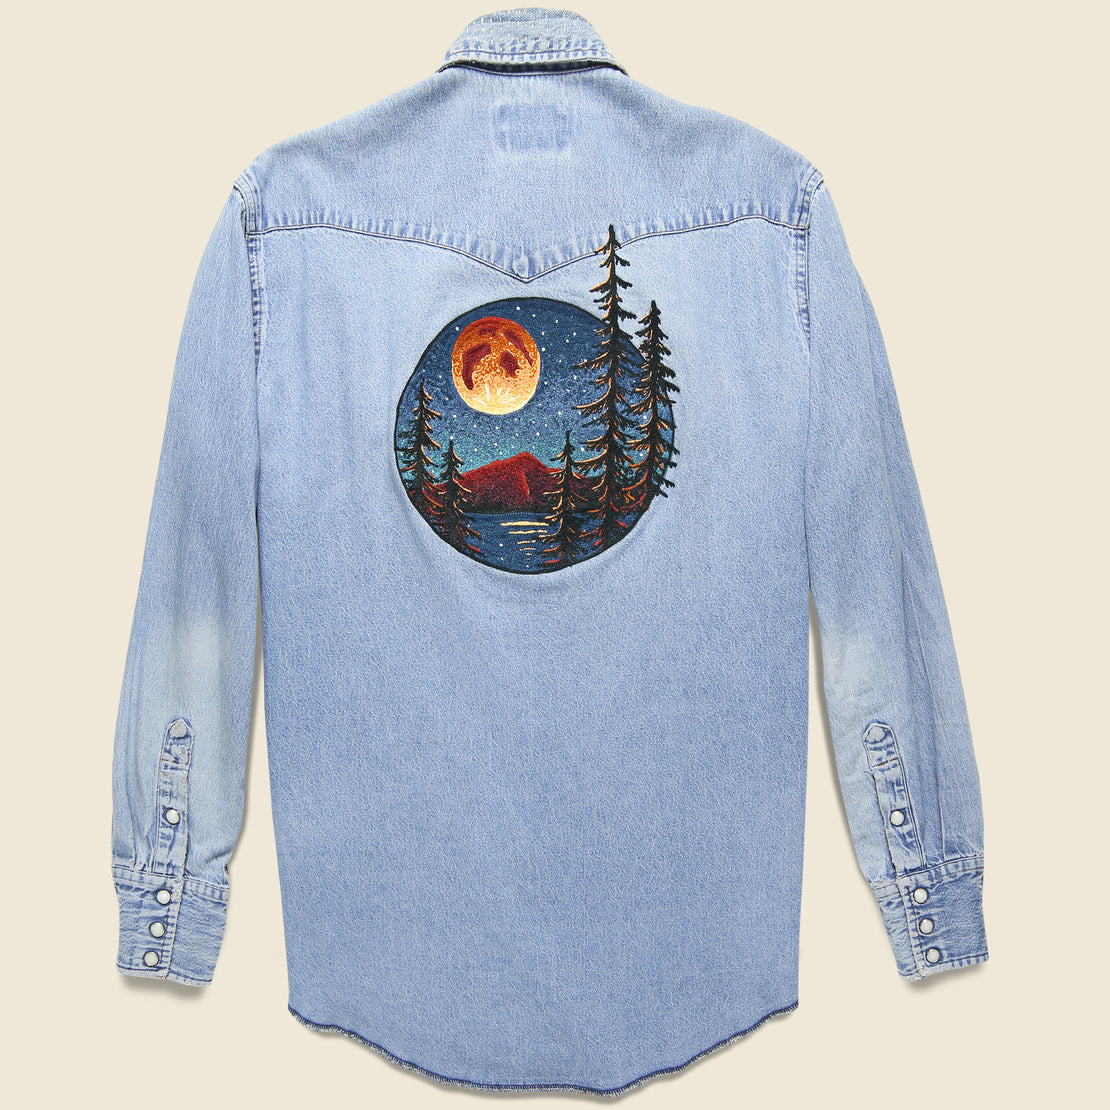 Fort Lonesome Blood Moon Wrangler Denim Shirt - Brown